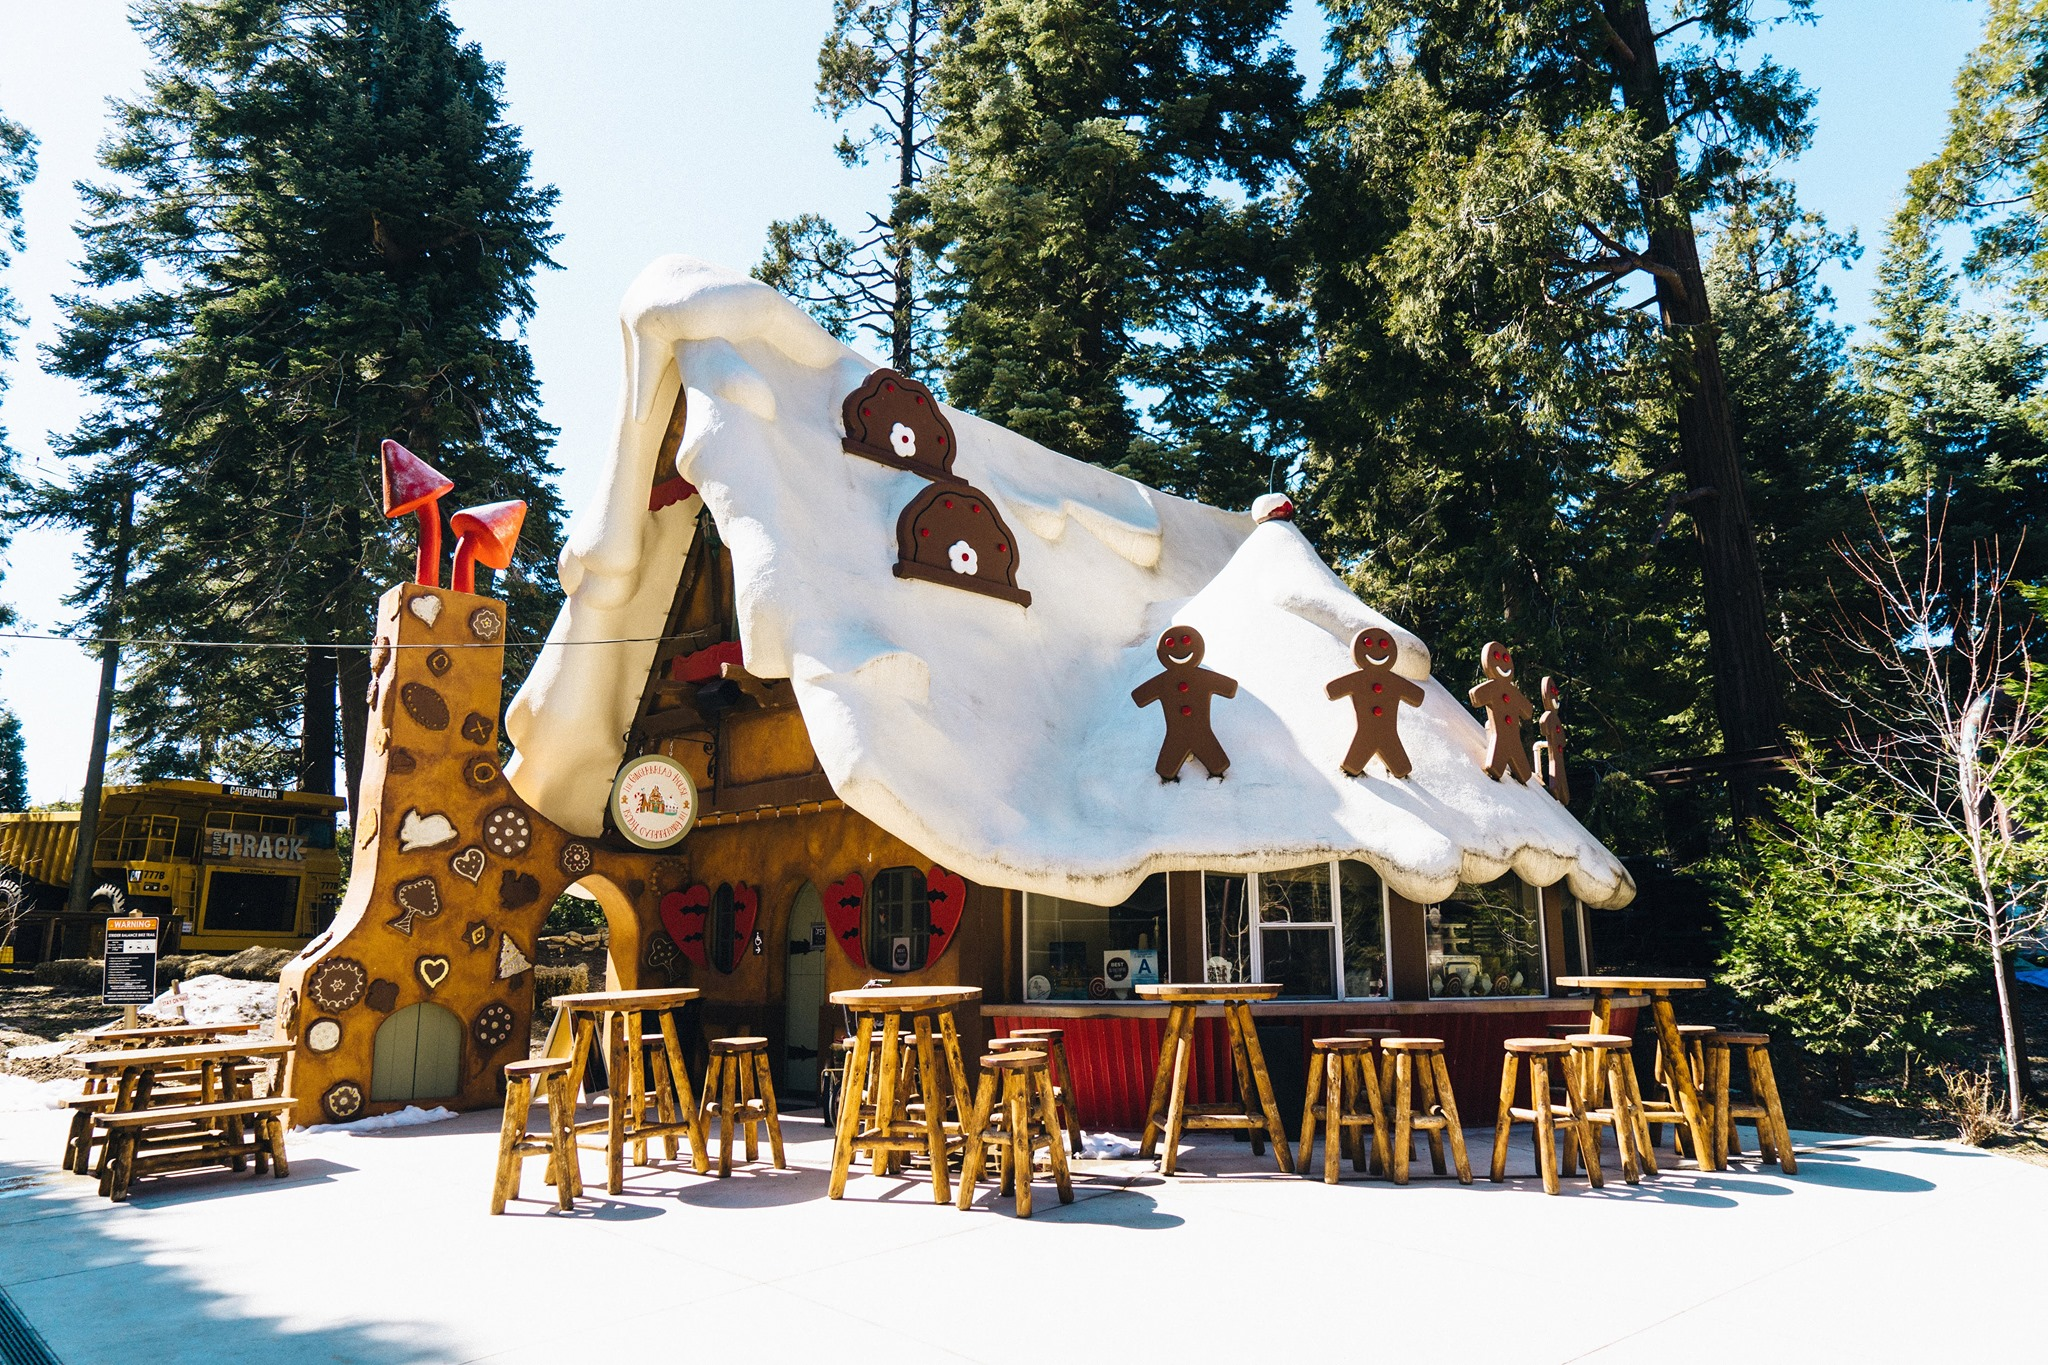 Christmas In Southern California Isn't Complete Until You've Made A Visit To Skypark At Santa's Village